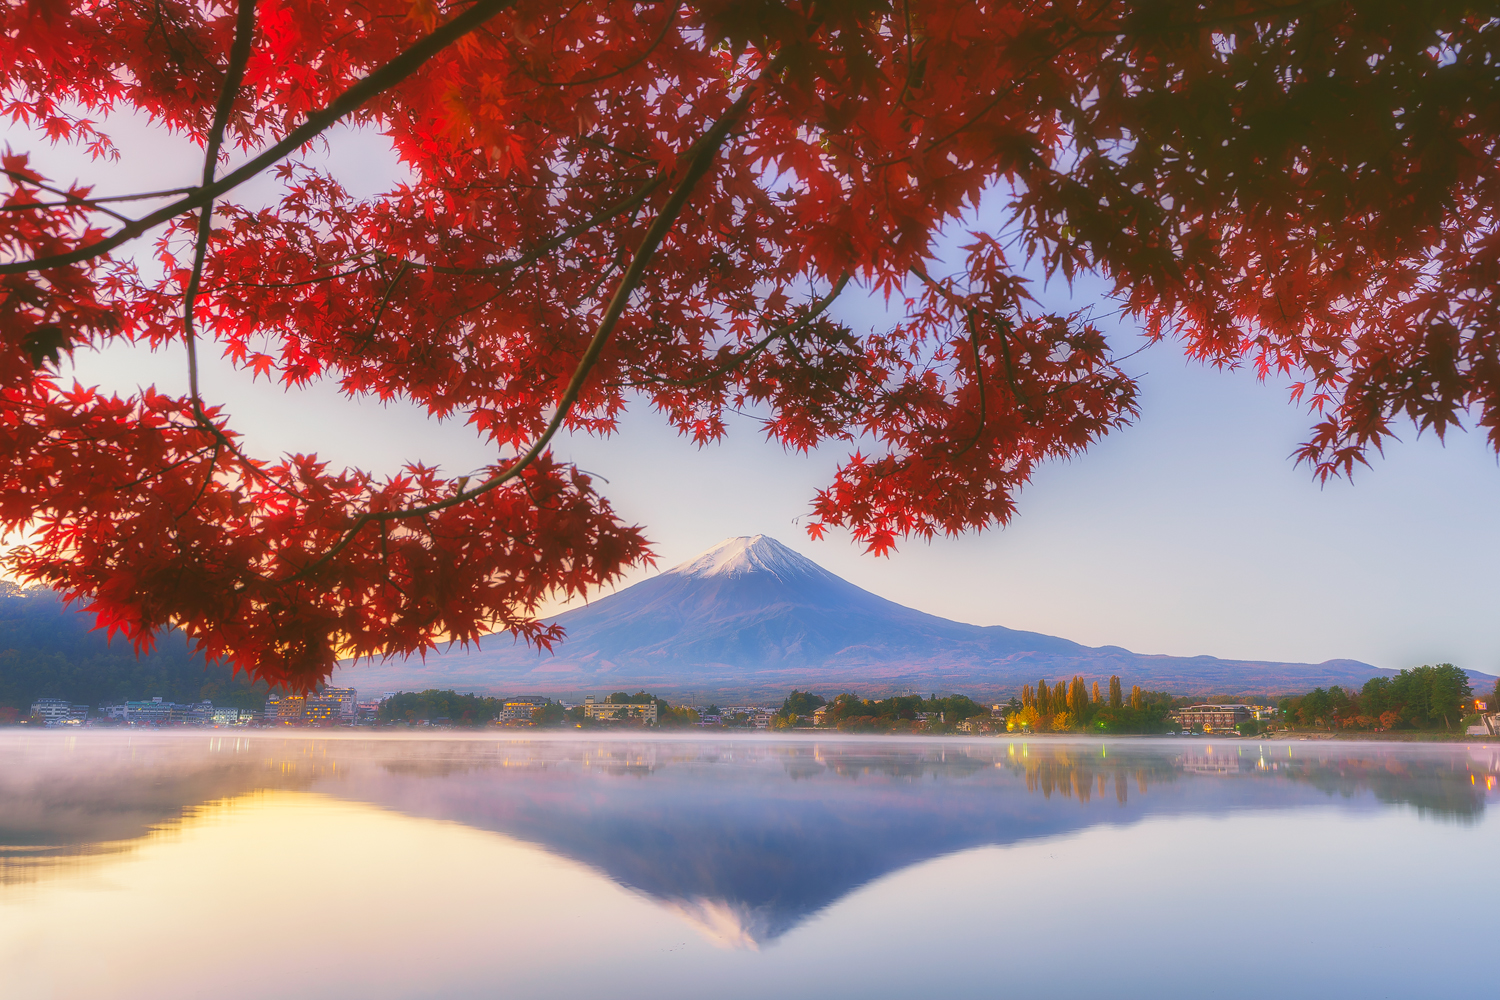 ​Mt. Fuji in autumn